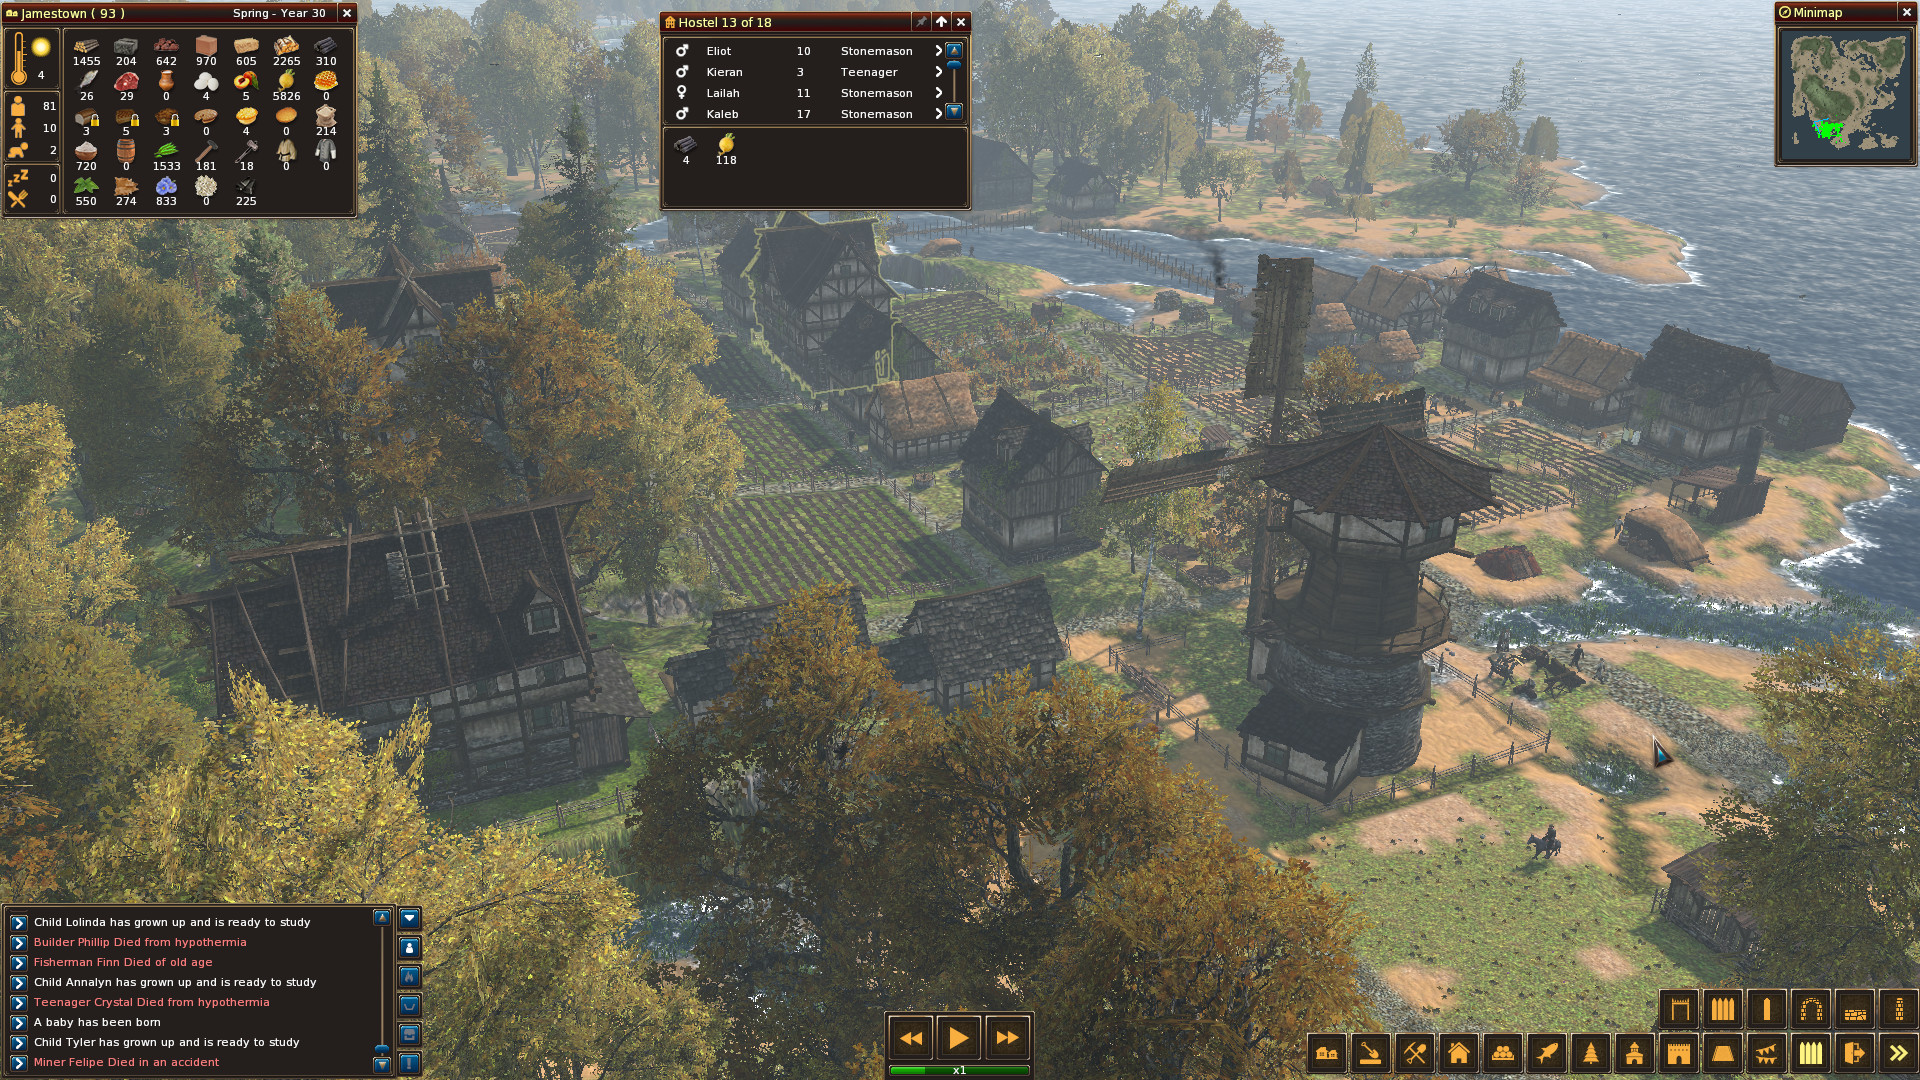 Life is feudal mmo скачать торрент рп сервер life is feudal